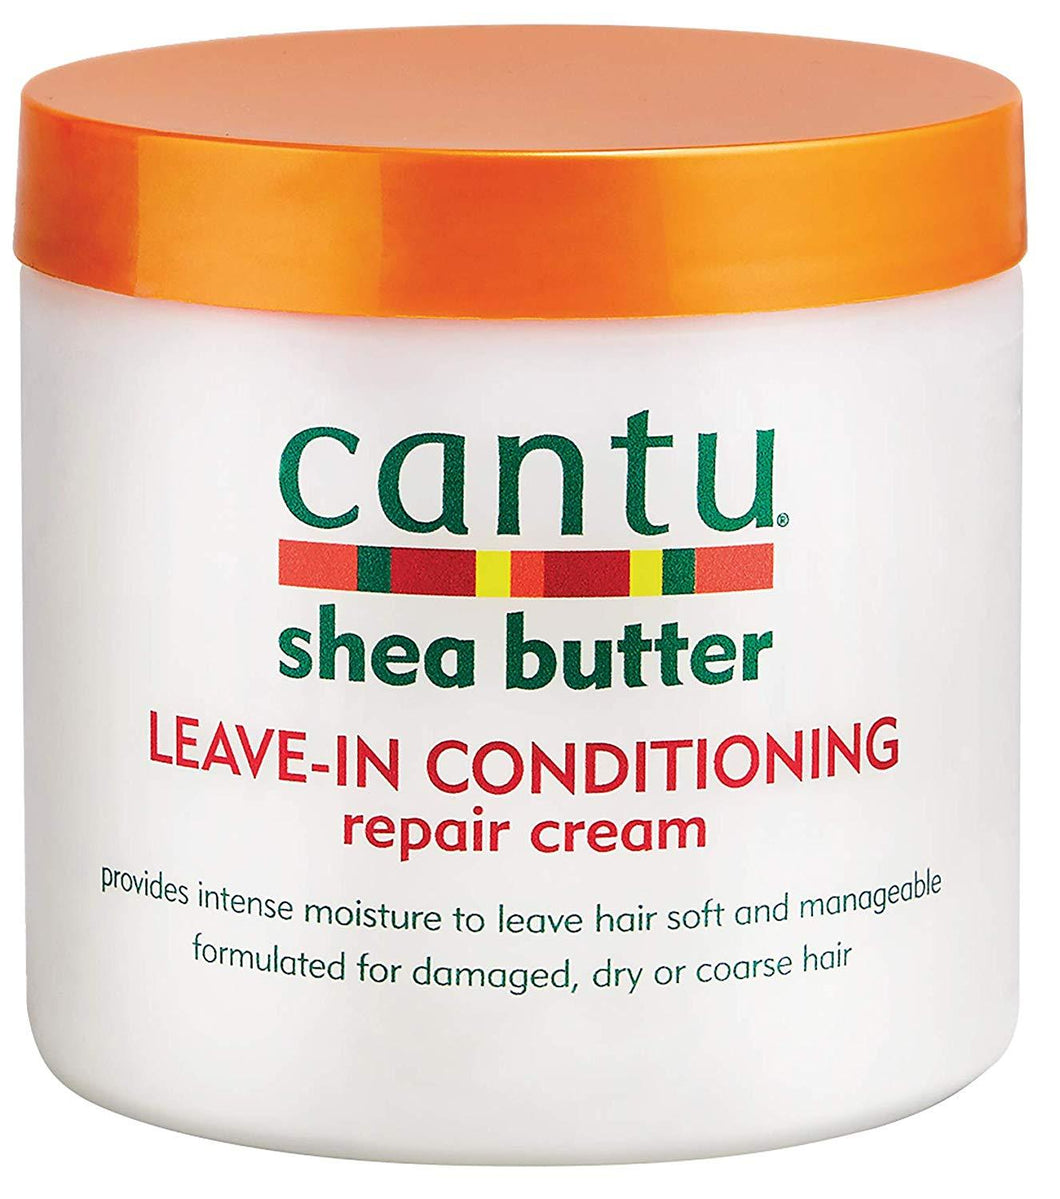 Cantu Haircare Cantu Shea Butter Leave-In Conditioning Repair Cream, 16 Ounce/453g